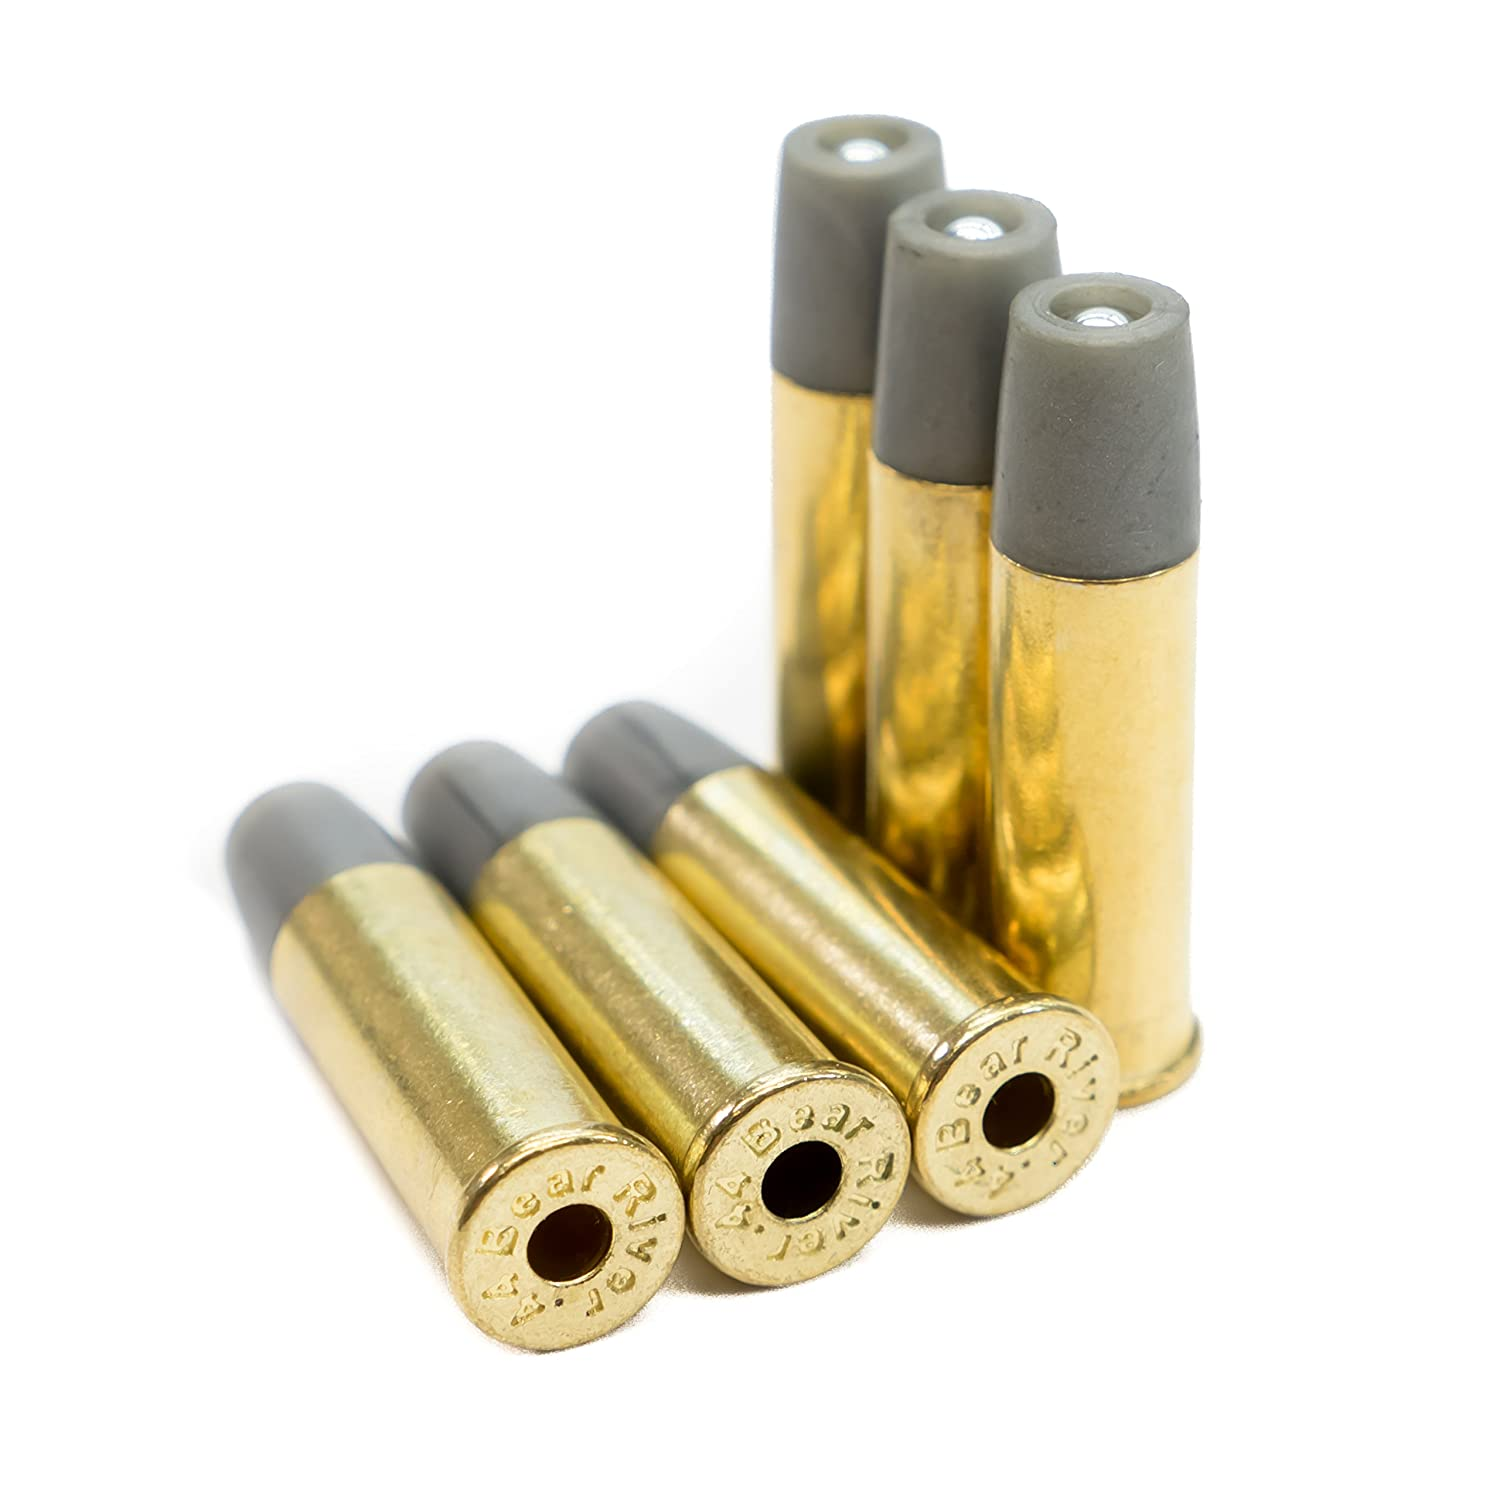 Amazon.com : BB Revolver Cartridges For Bear River Schofield No.3 Airgun  Shells Hold One .177 Caliber BB Ammo 6 Pack : Sports U0026 Outdoors